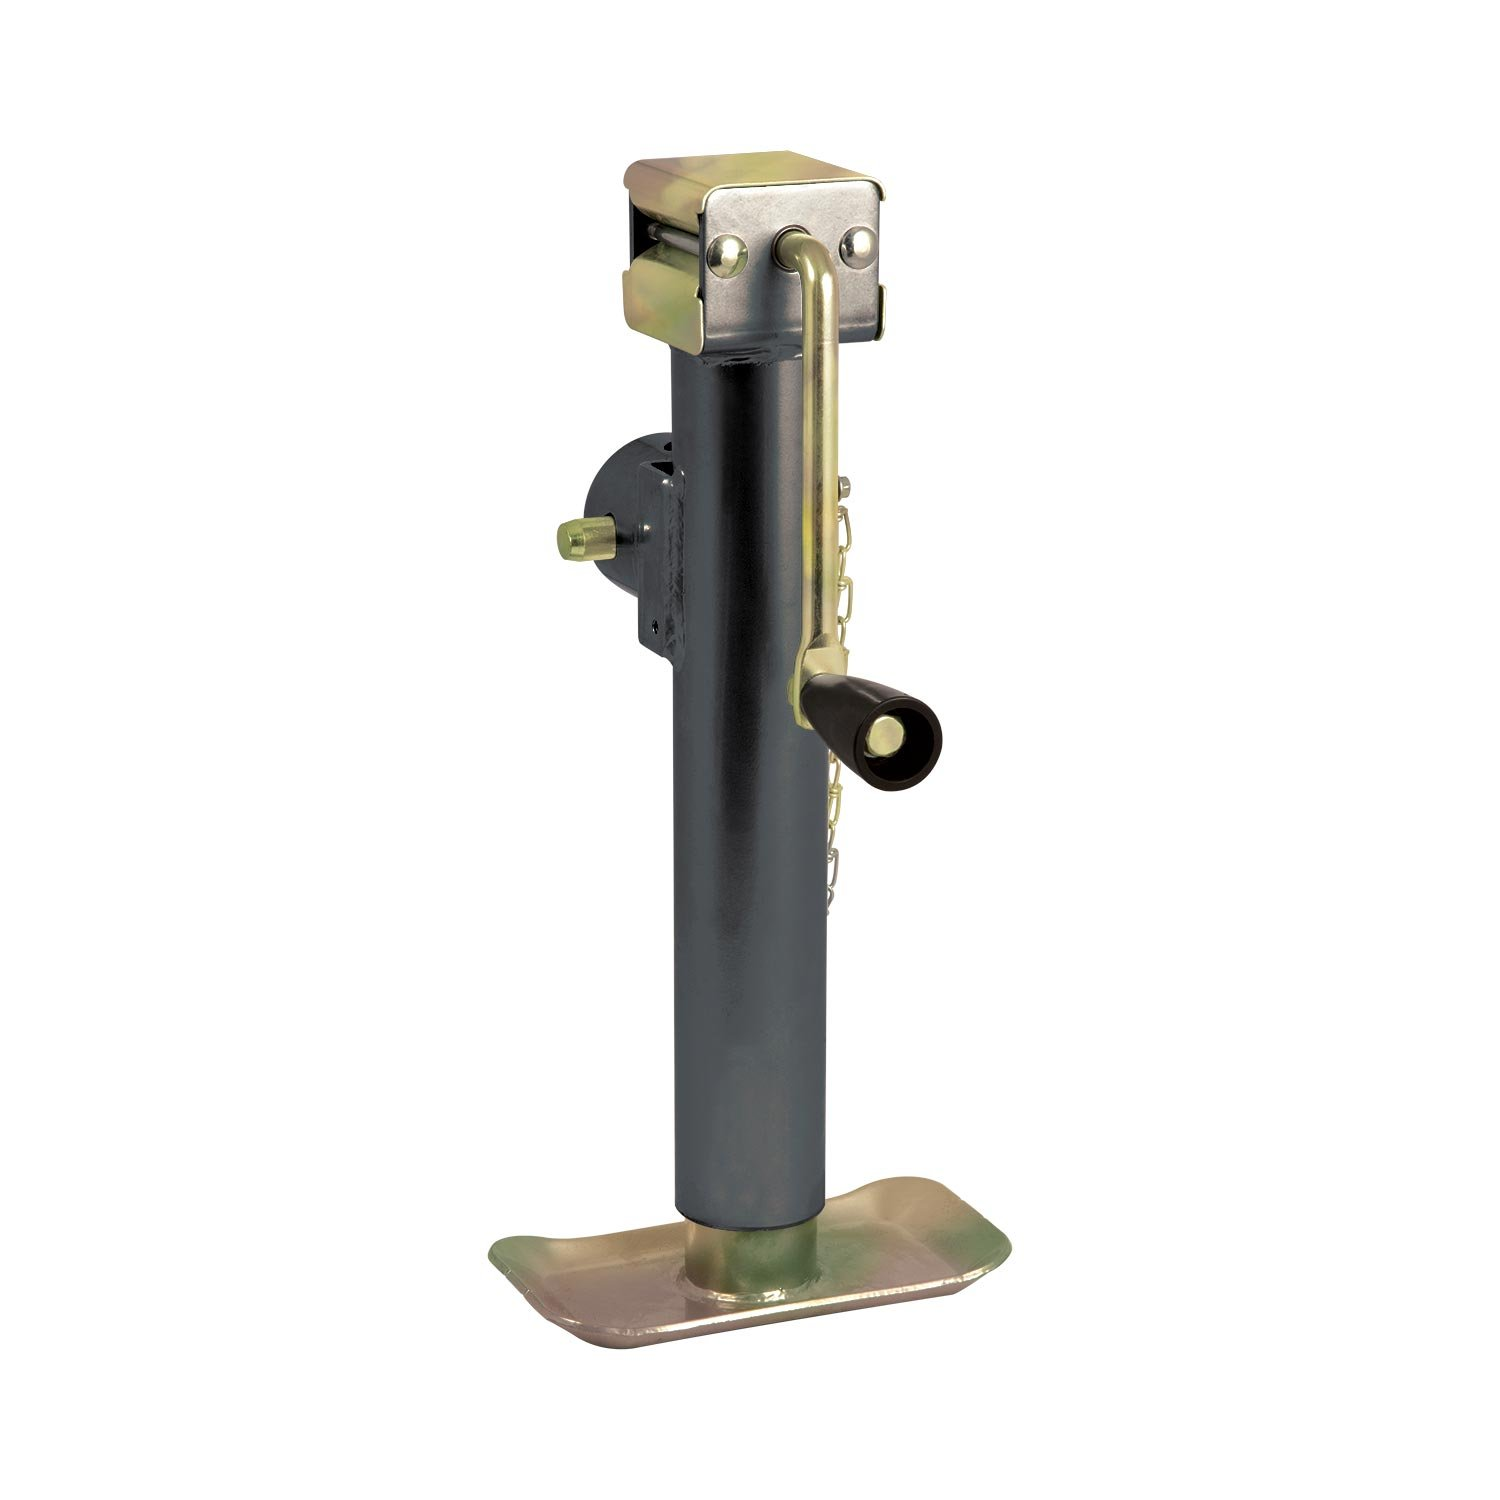 Koch Industries 4221020 Trailer Jack Weld-on Swivel Tube Mount, 5,000-Pound Lift Capacity, Sidewind, 10-inch Travel